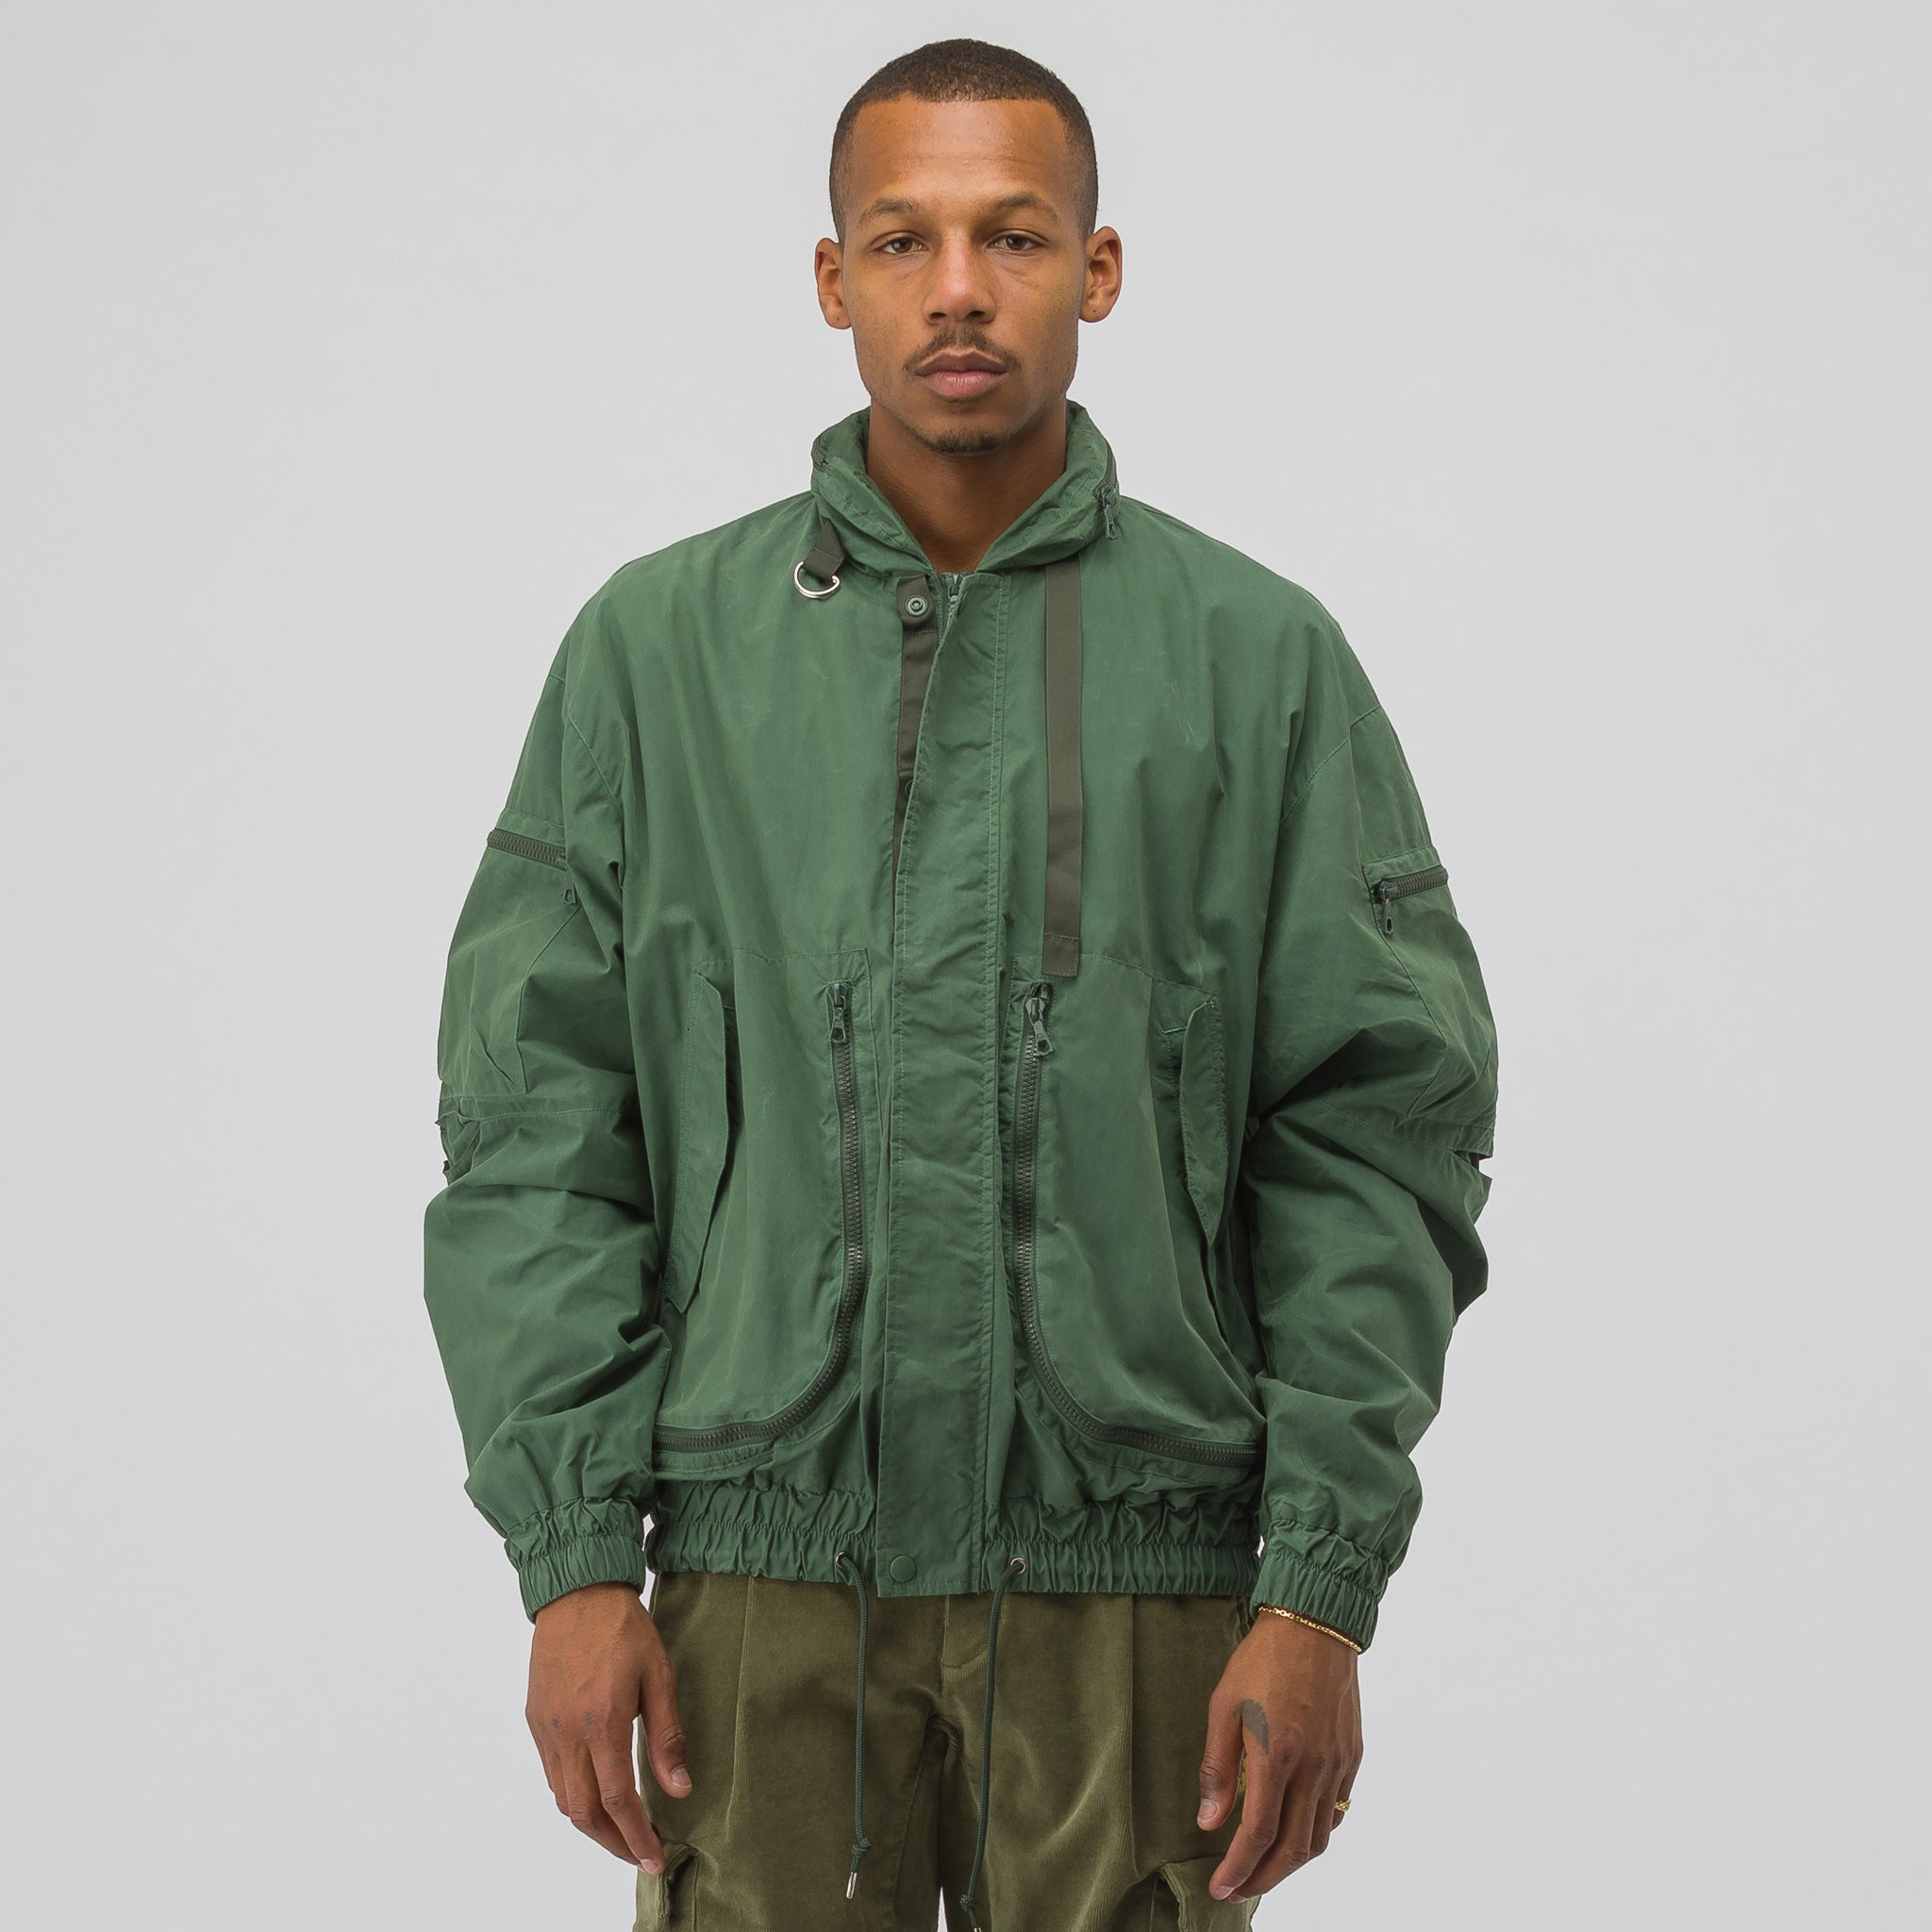 SRD Parachute Jacket in Olive